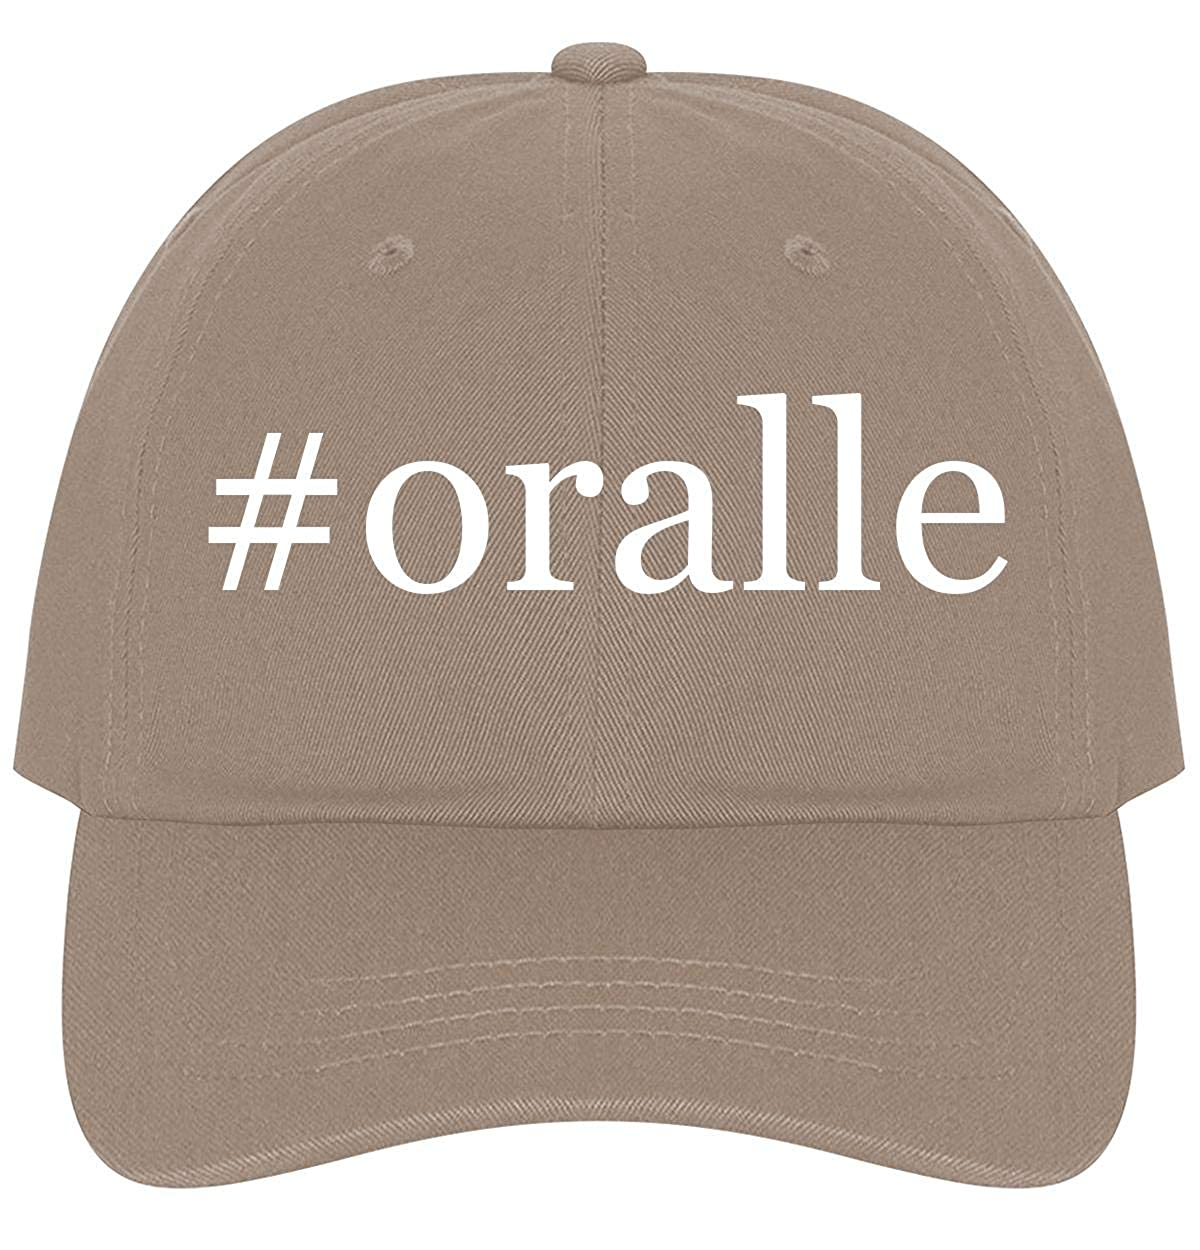 The Town Butler #Oralle - A Nice Comfortable Adjustable Hashtag Dad Hat Cap